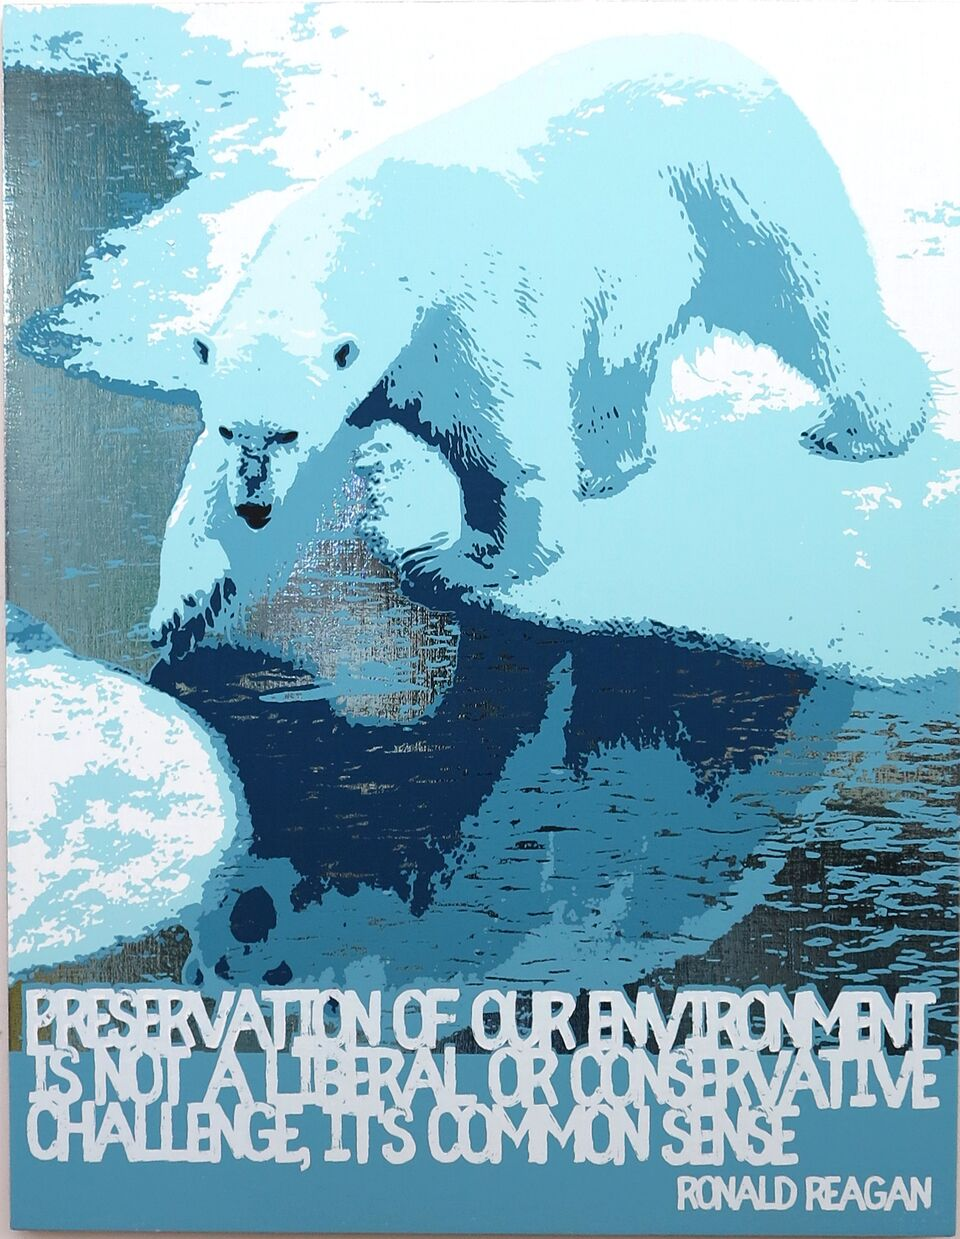 Polar Bear/Global Warming (Ronald Reagan)